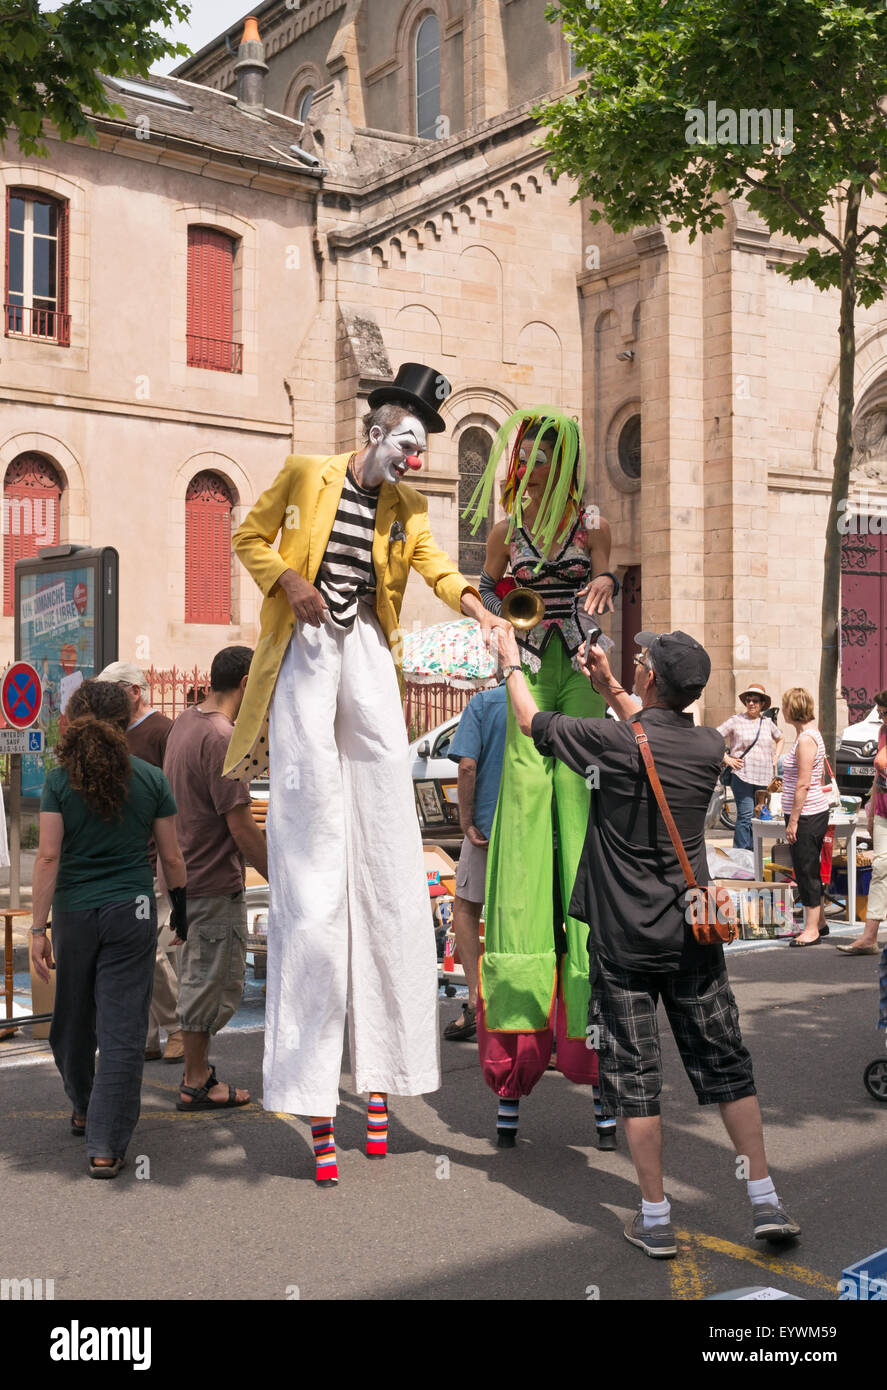 man-taking-photograph-of-stilt-walkers-a